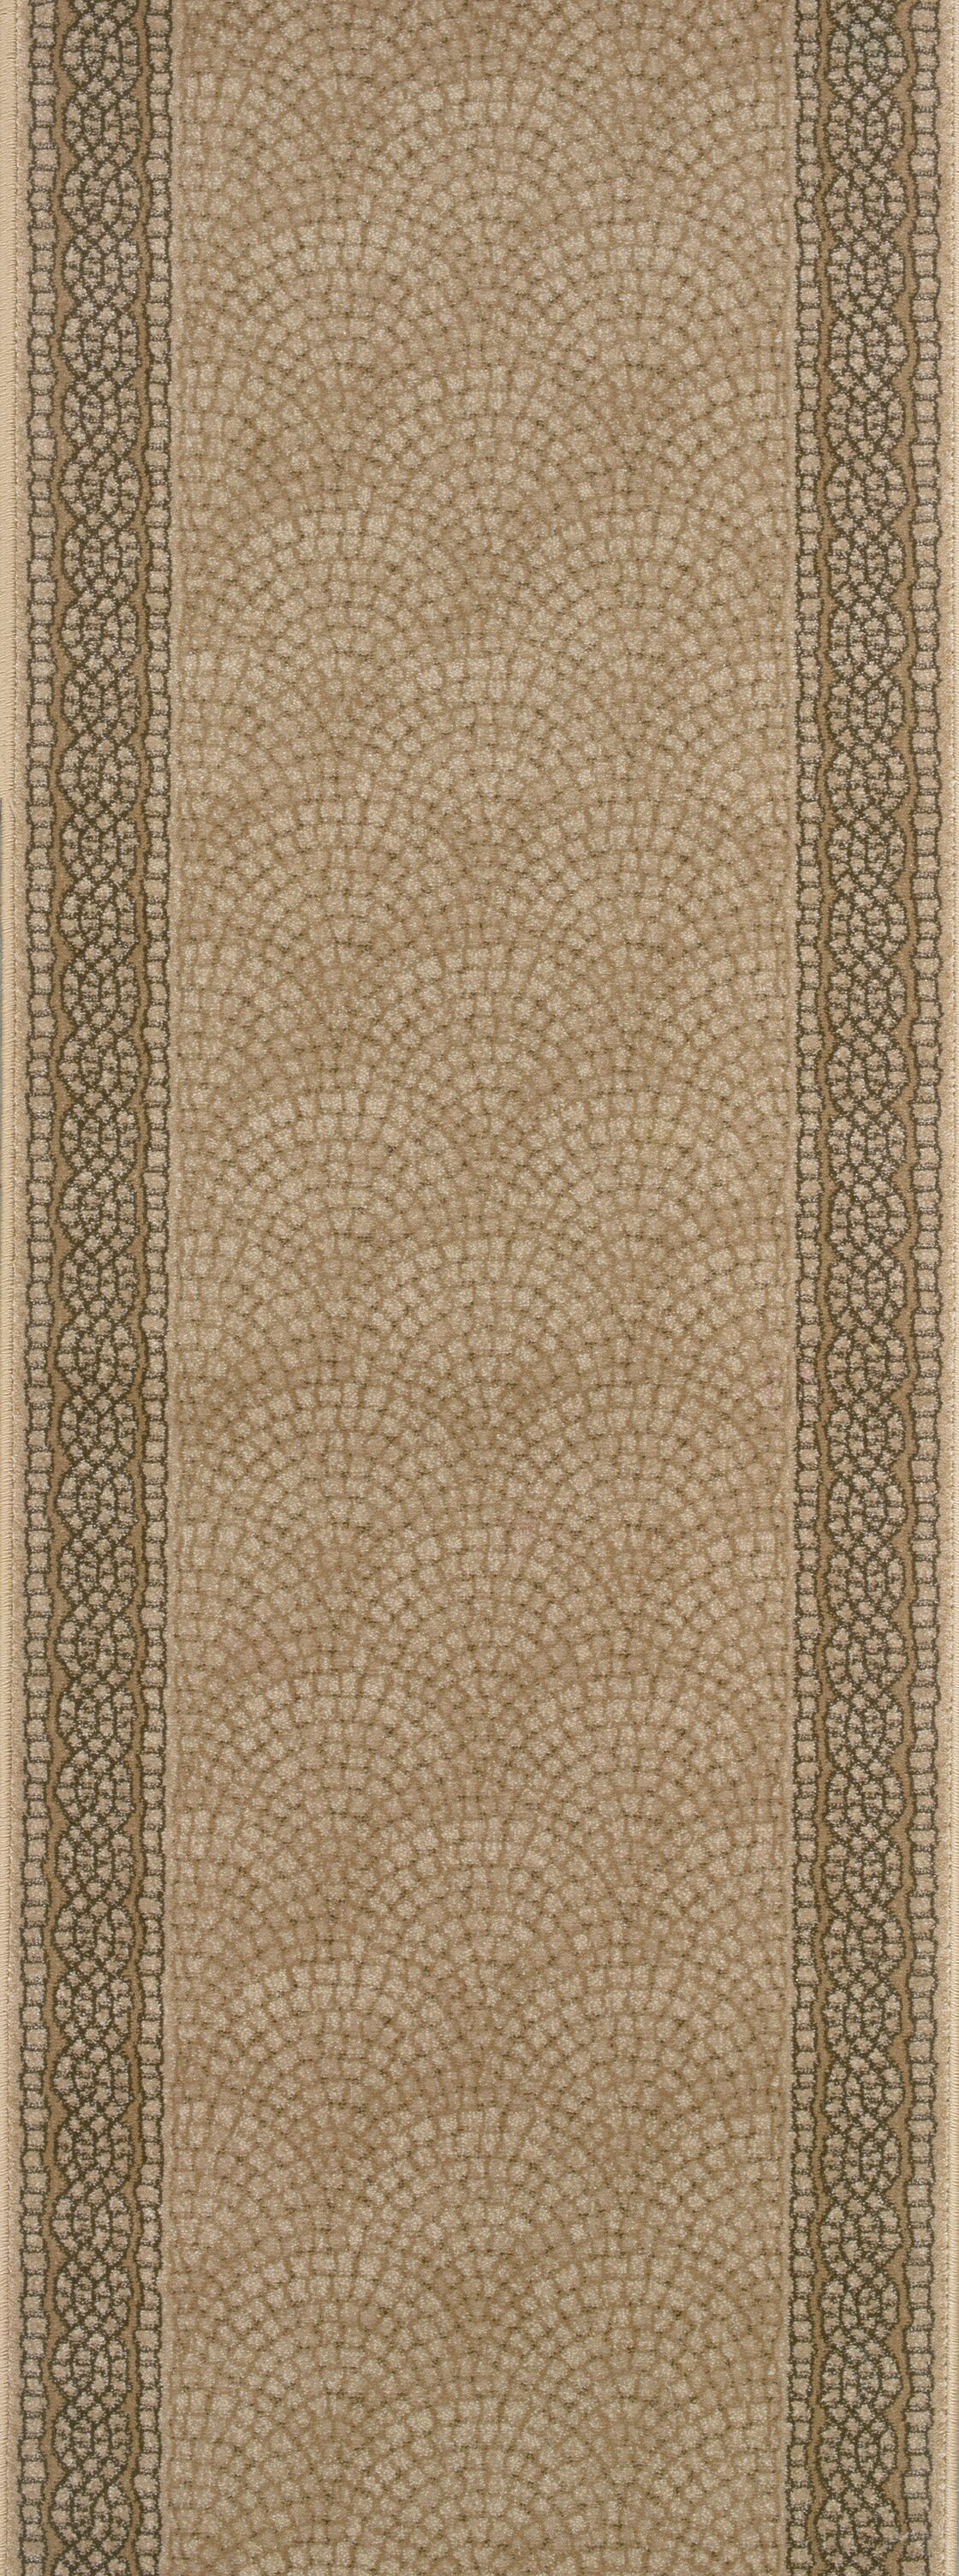 Srisailam Tan Area Rug Rug Size: Runner 2'7